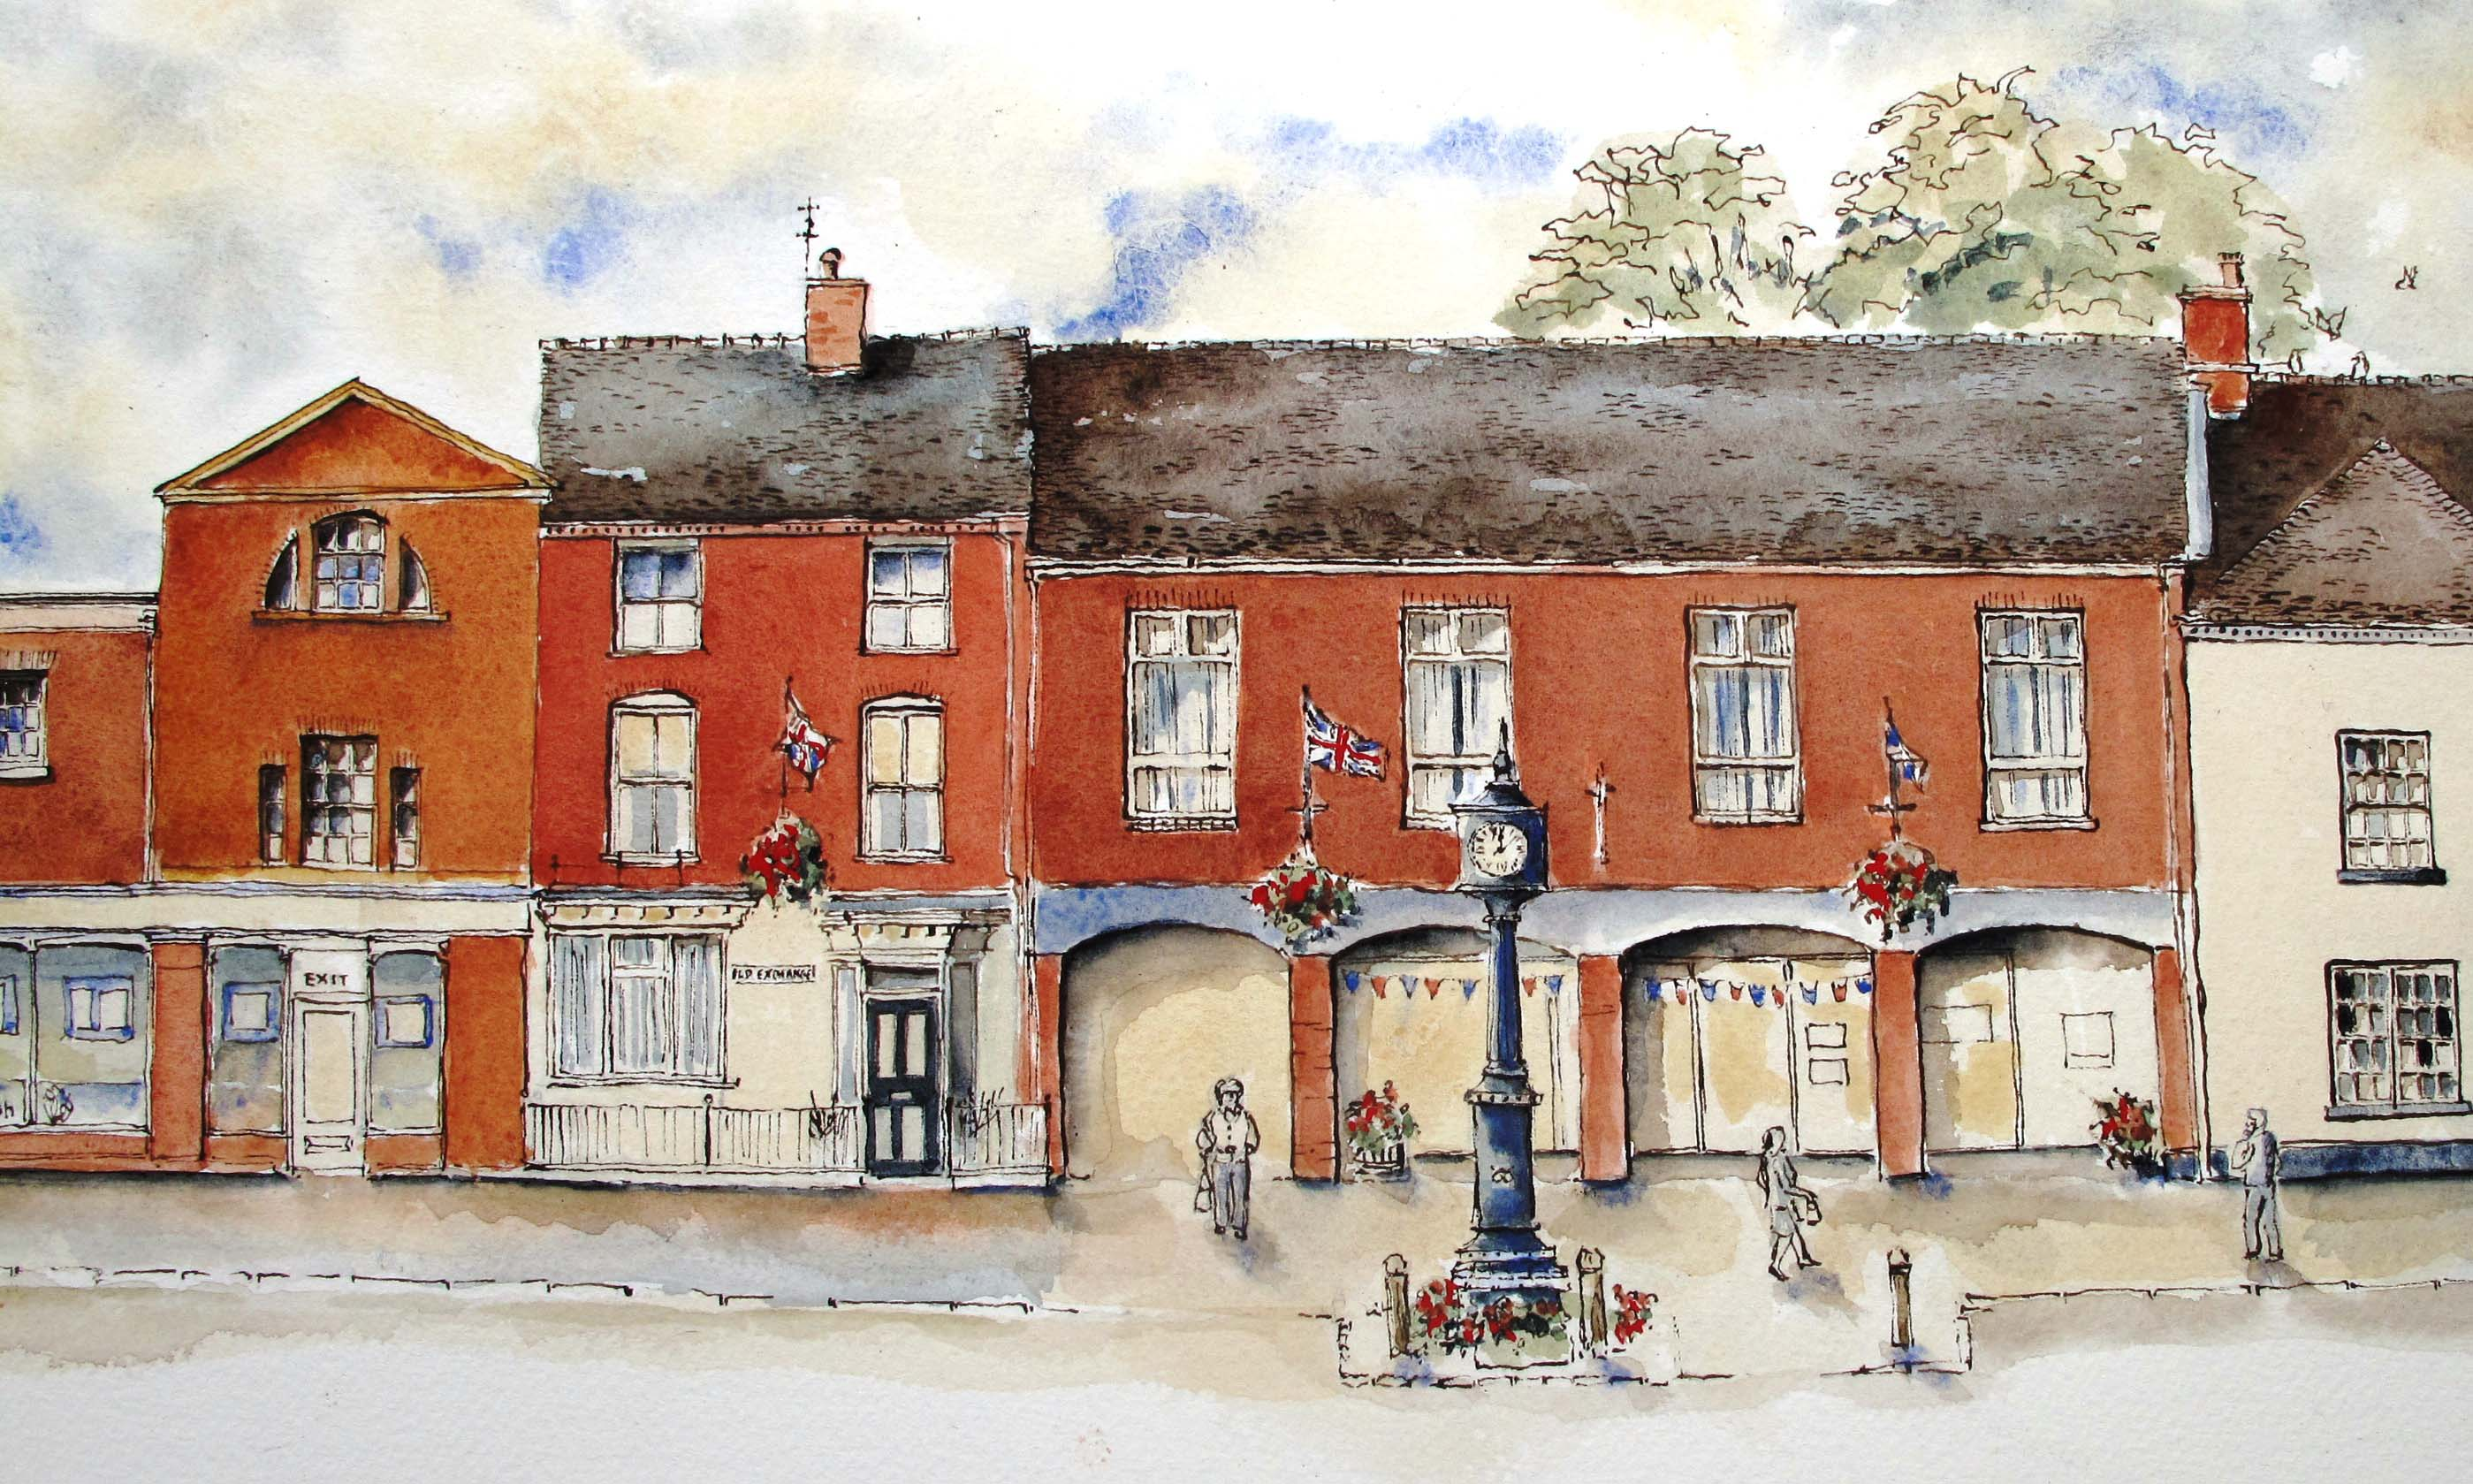 colour wash in egg tempera over Eccleshall Library